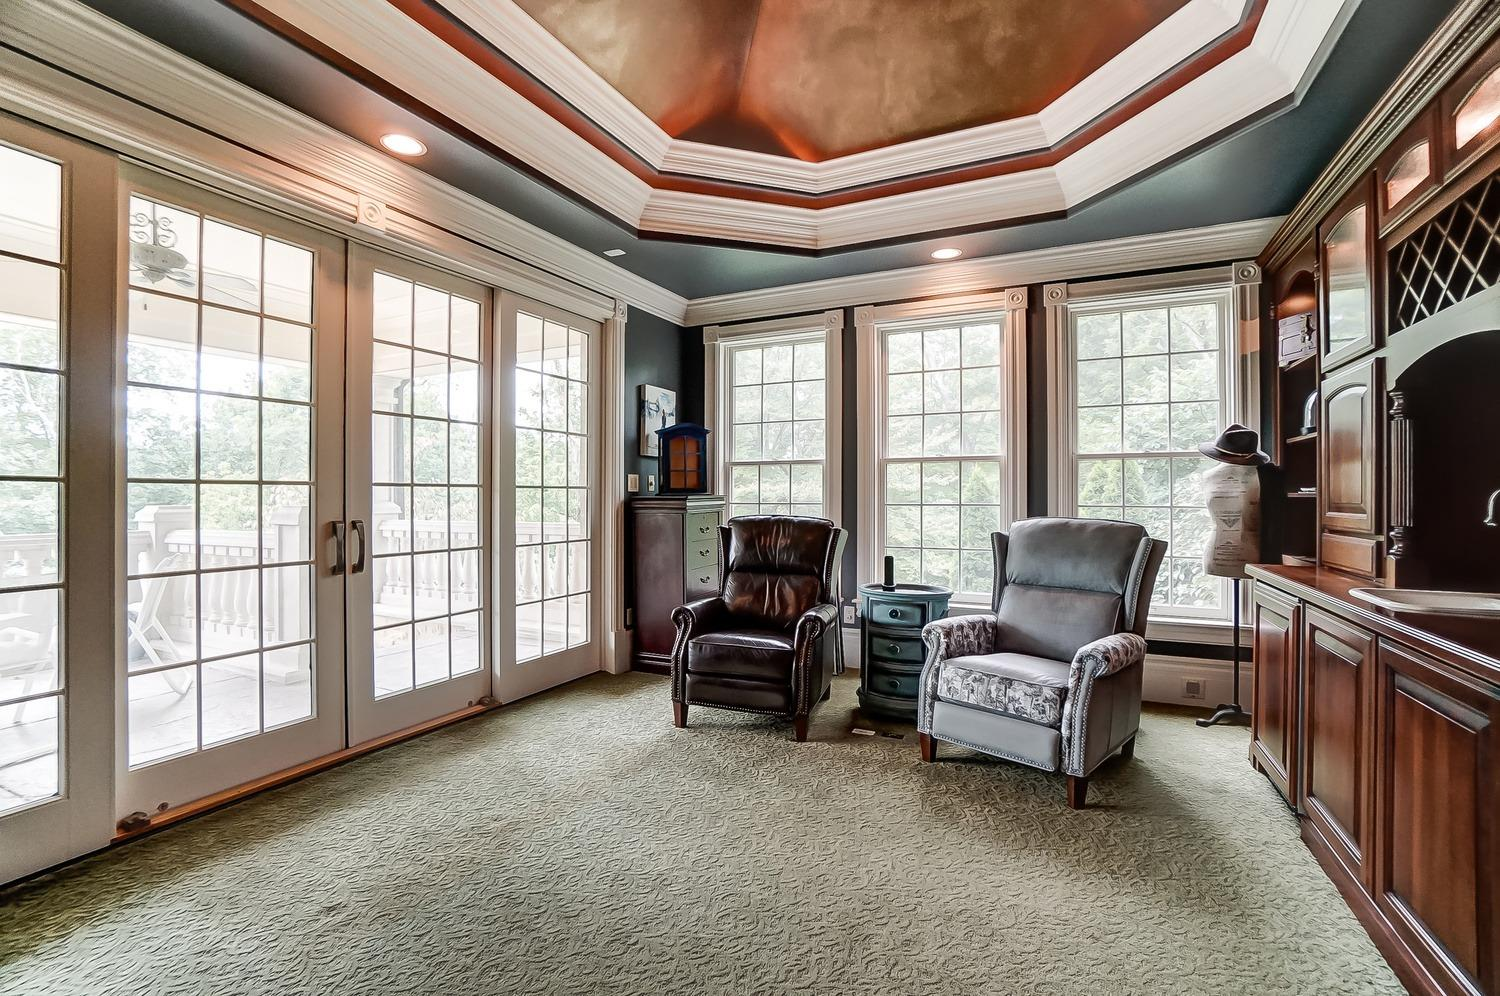 The sitting area which is part of the master suite was originally designed to be